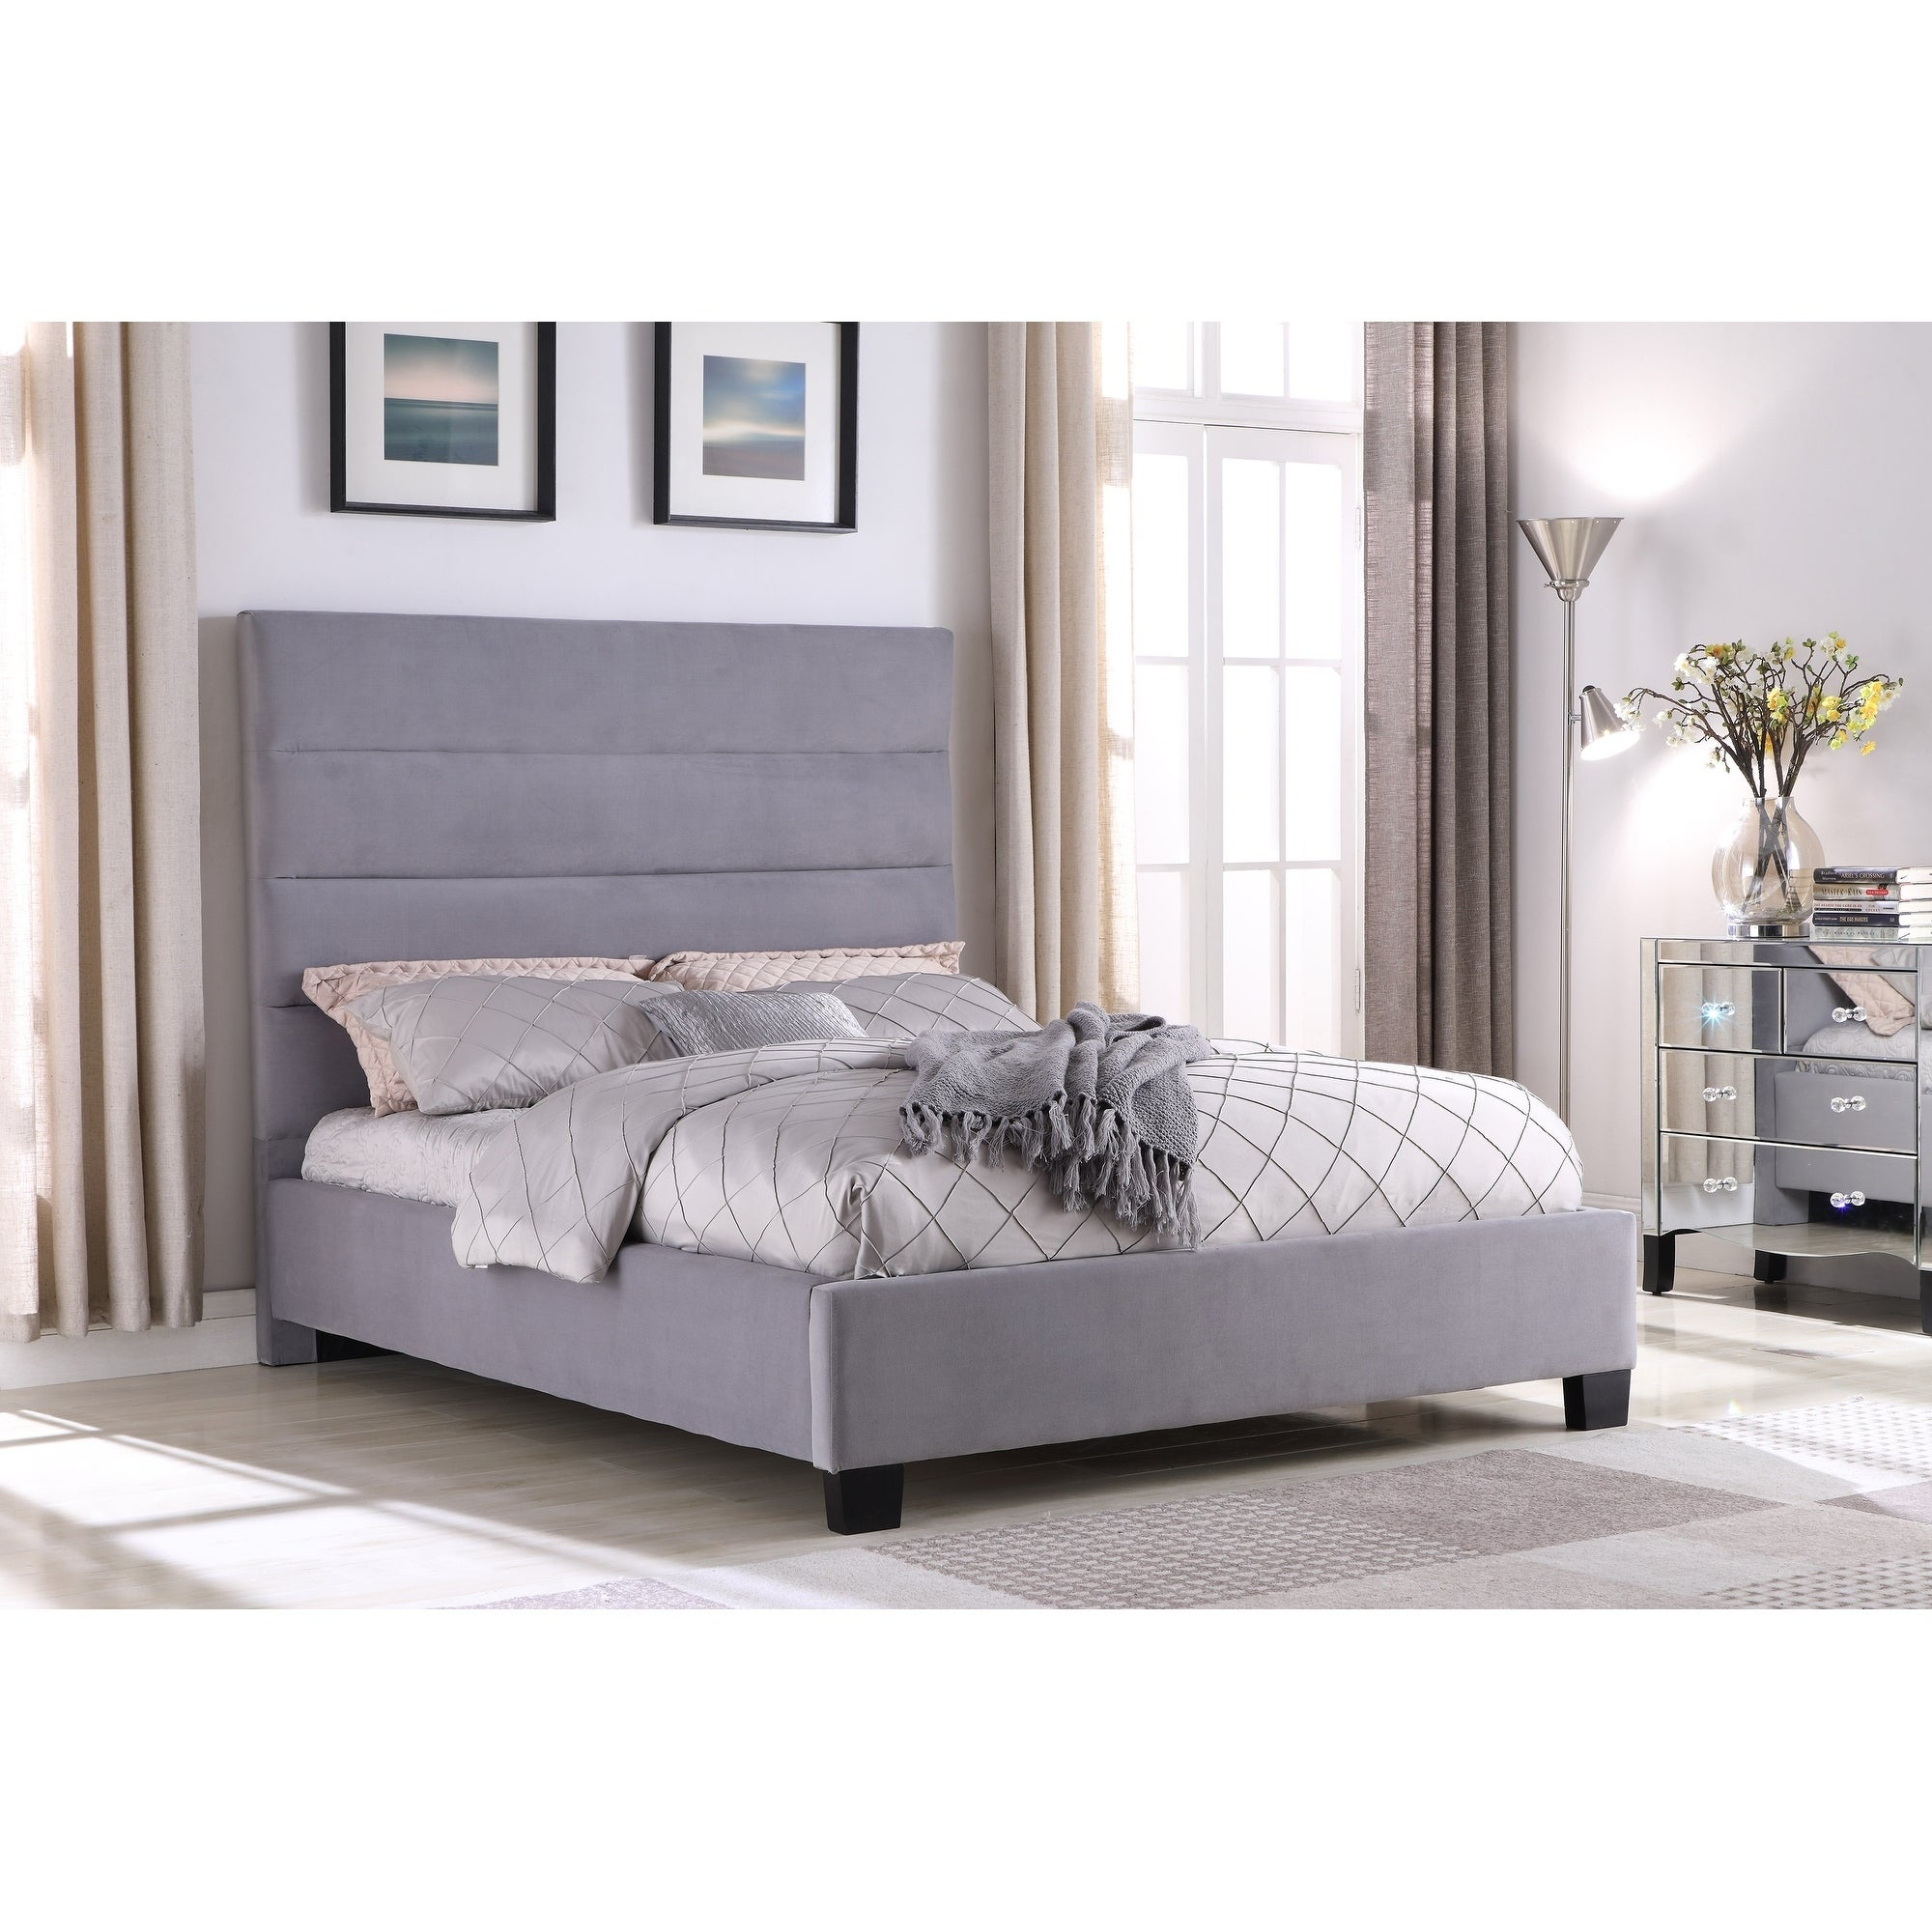 Best Master Furniture Grey Upholstered Platform Bed On Sale Overstock 22814724 Queen